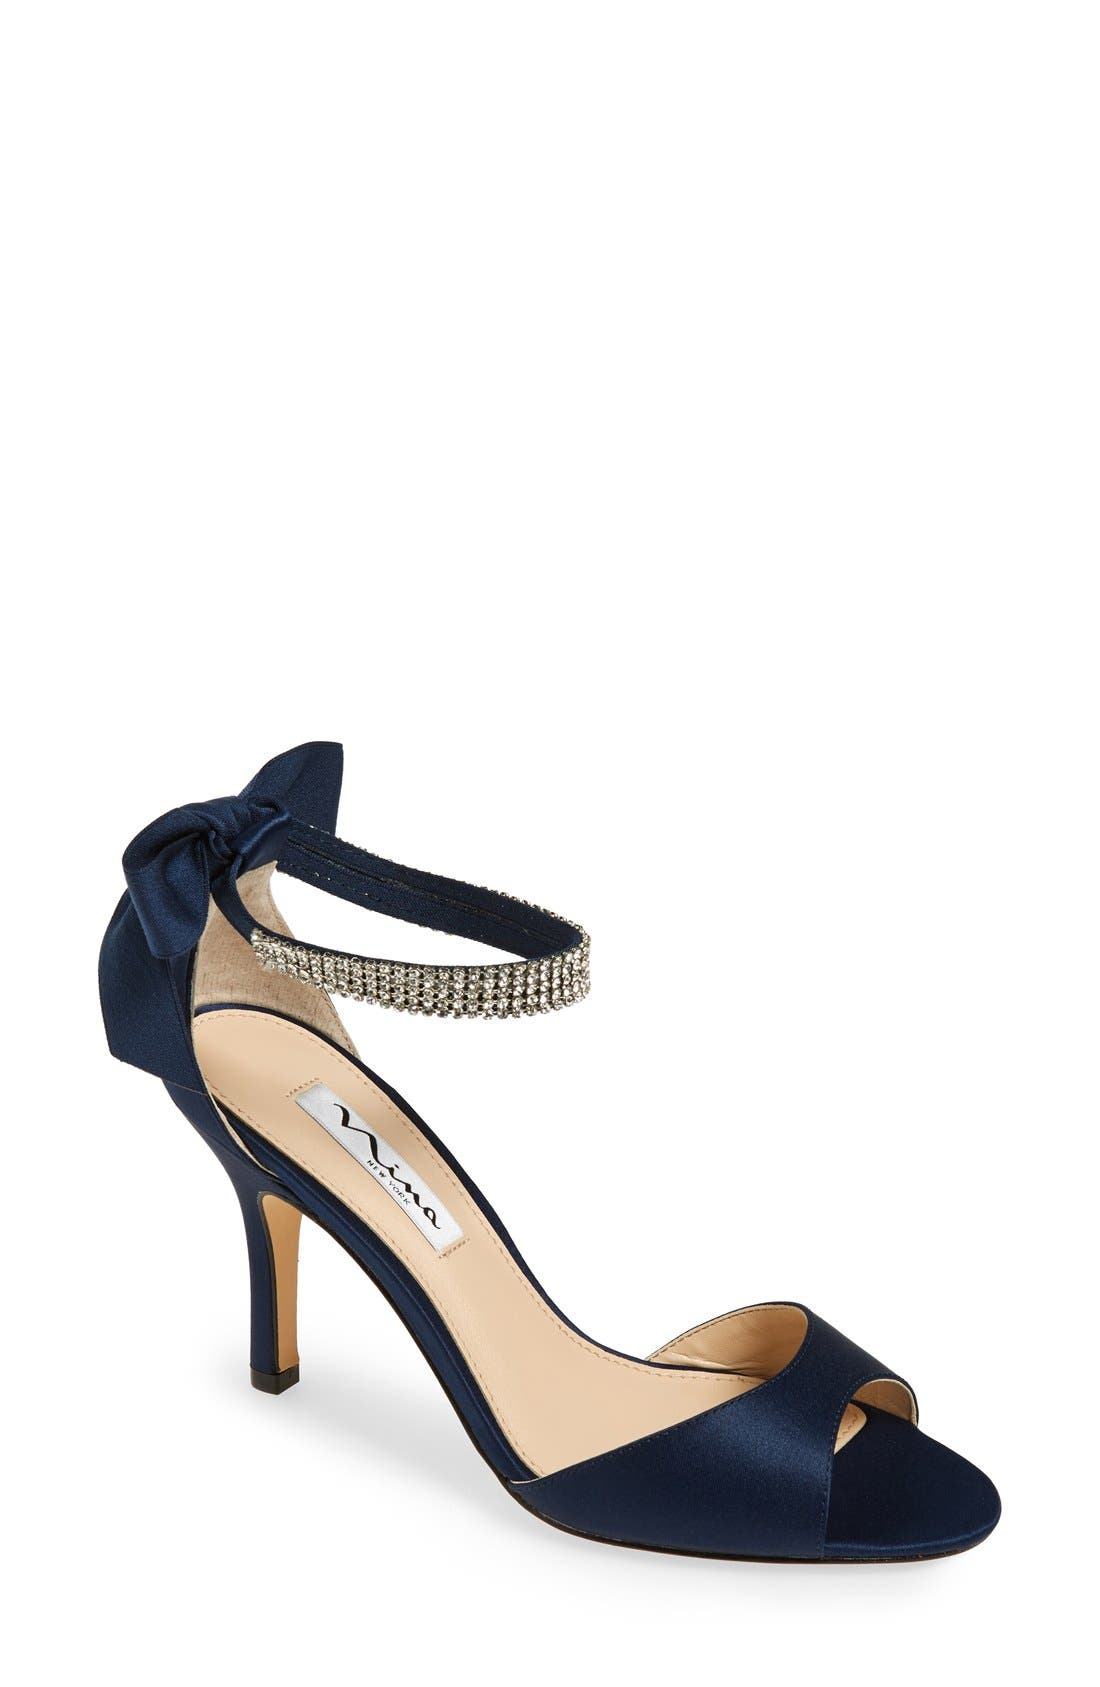 Alternate Image 1 Selected - Nina 'Vinnie' Crystal Embellished Ankle Strap Sandal (Women)